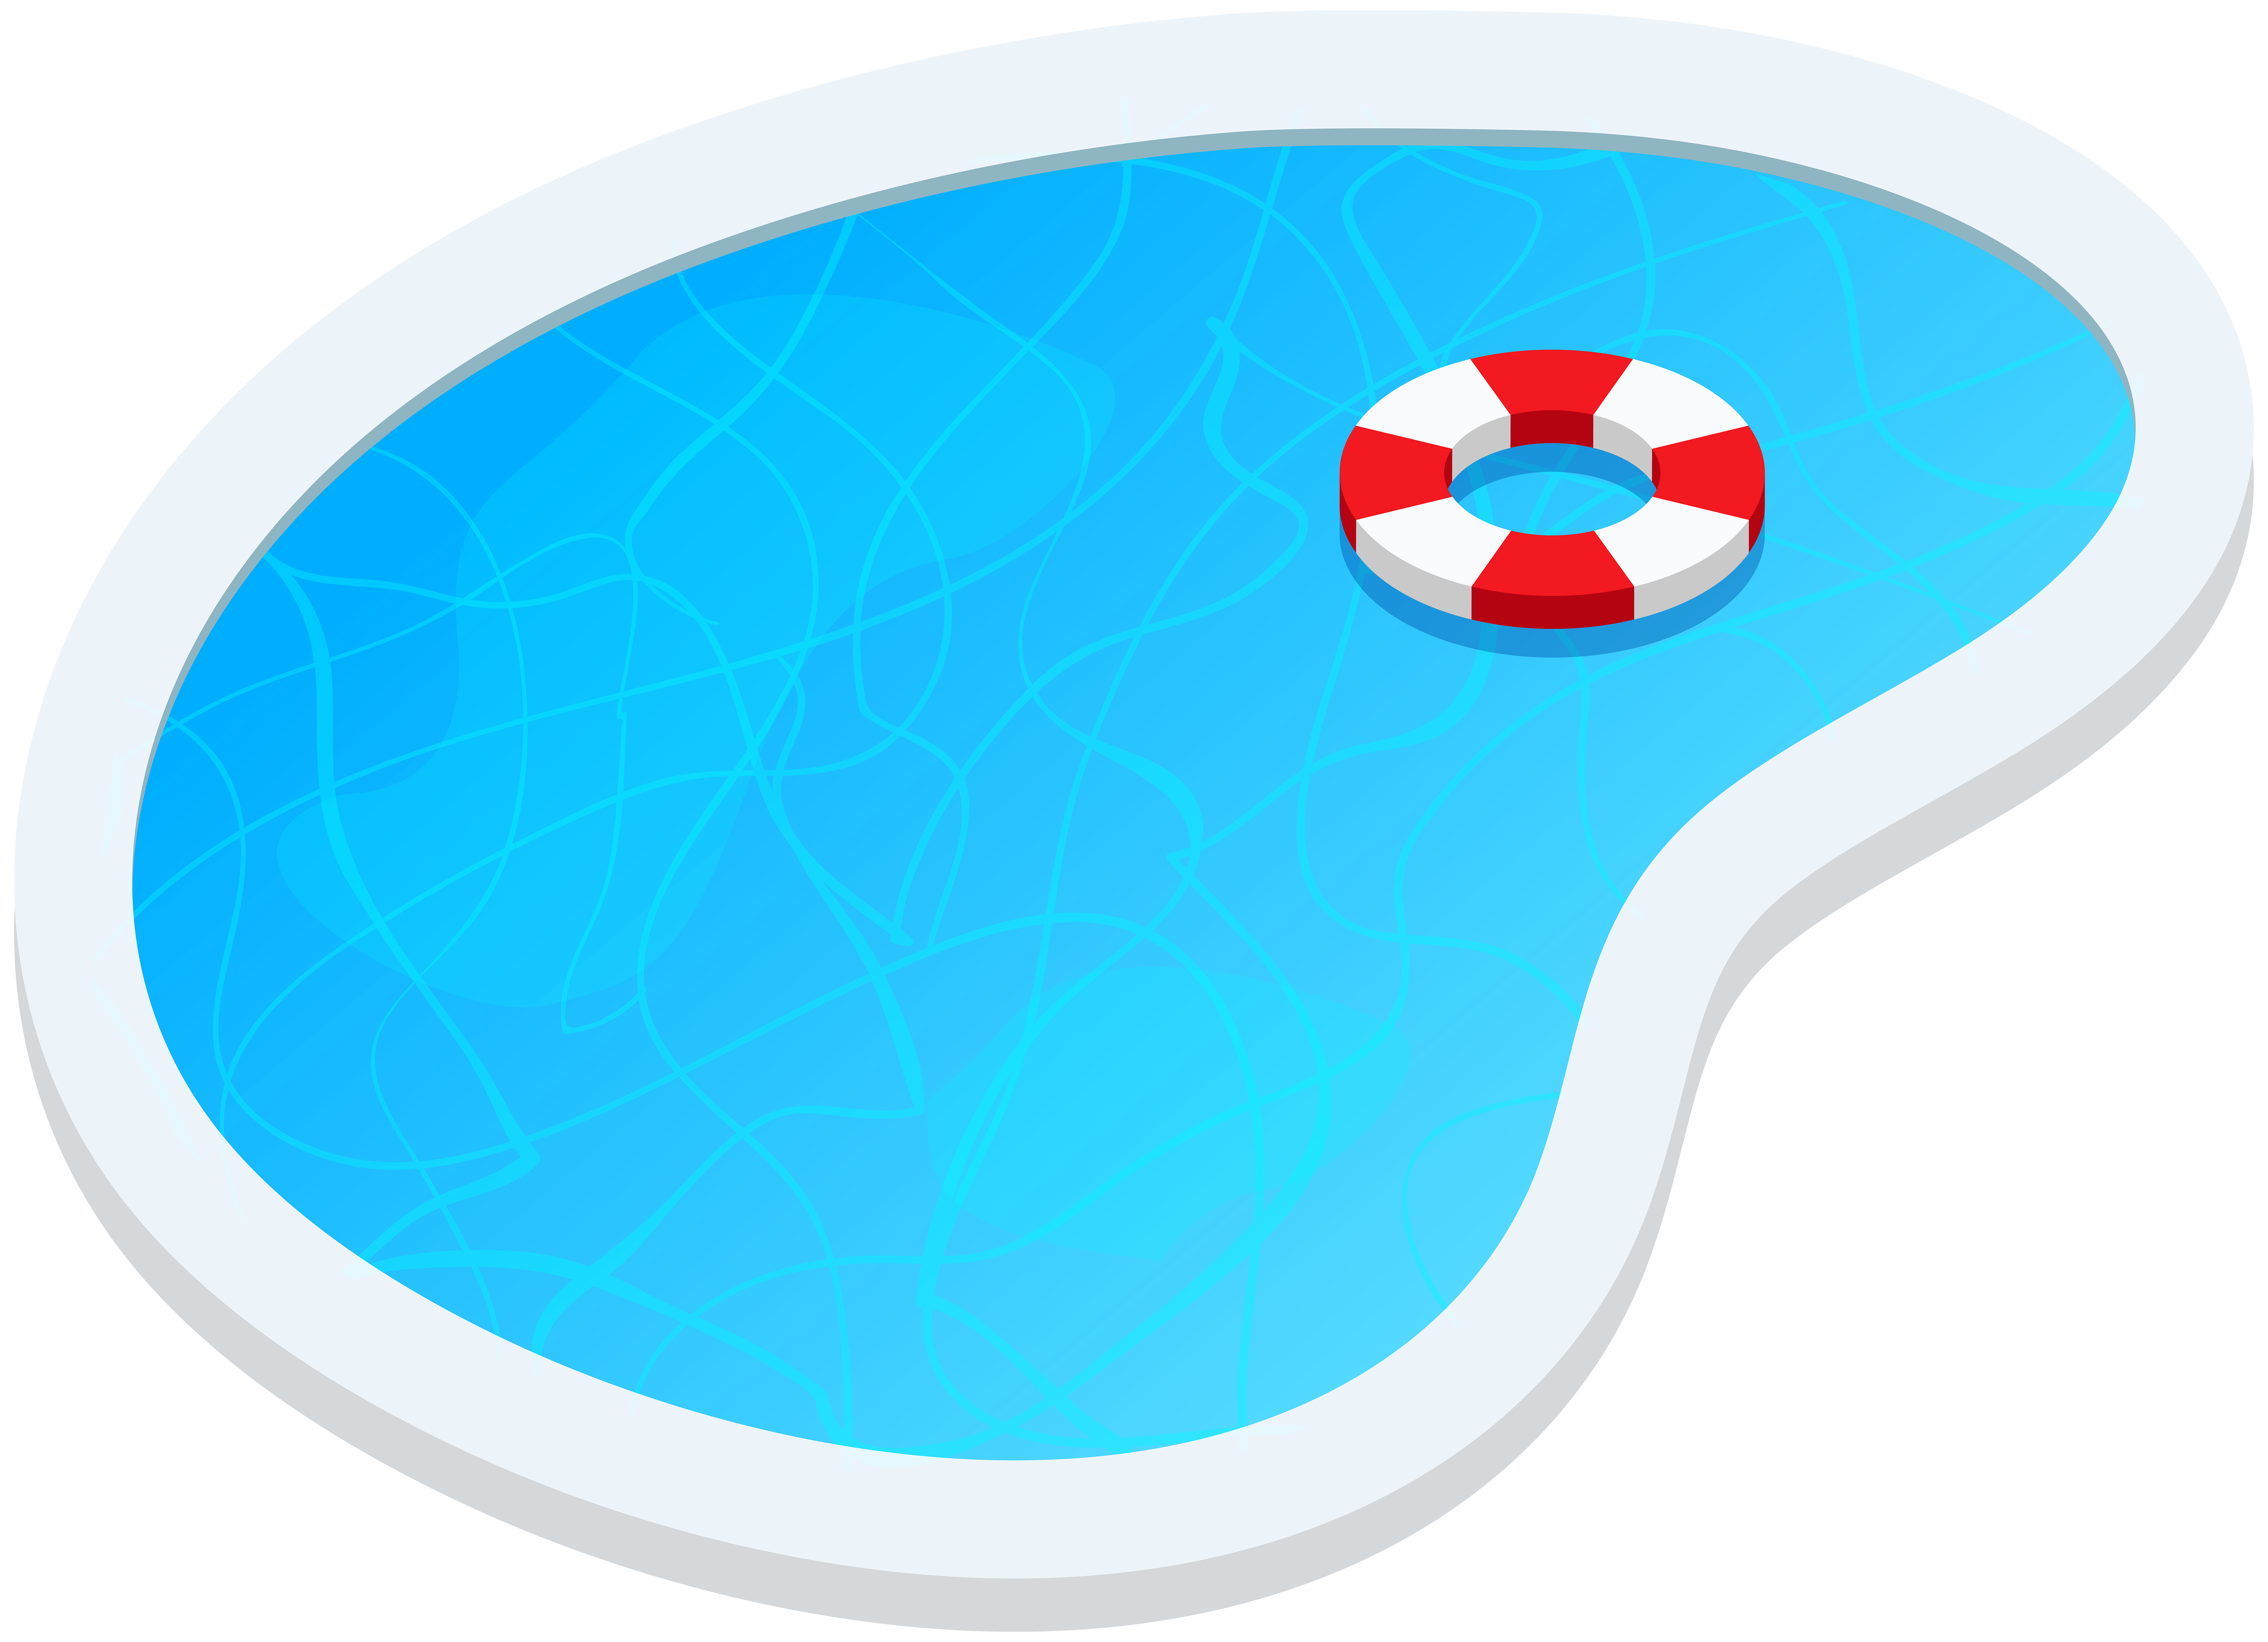 8000x5792 Swimming Pool Oval Png Clip Art